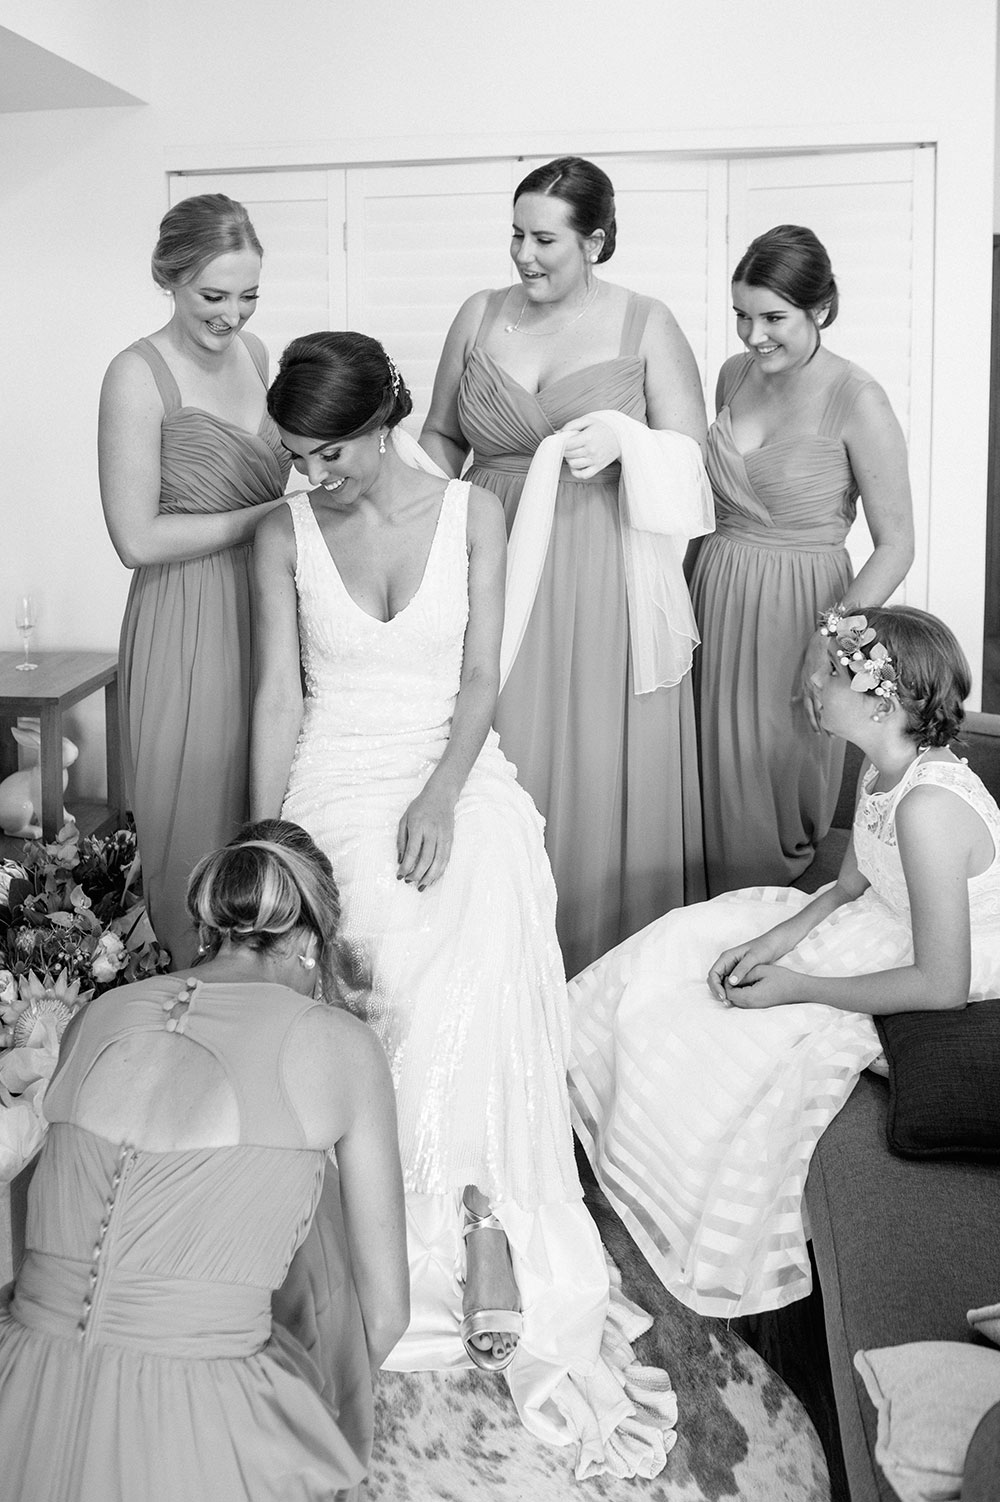 Lisette and her bridesmaids